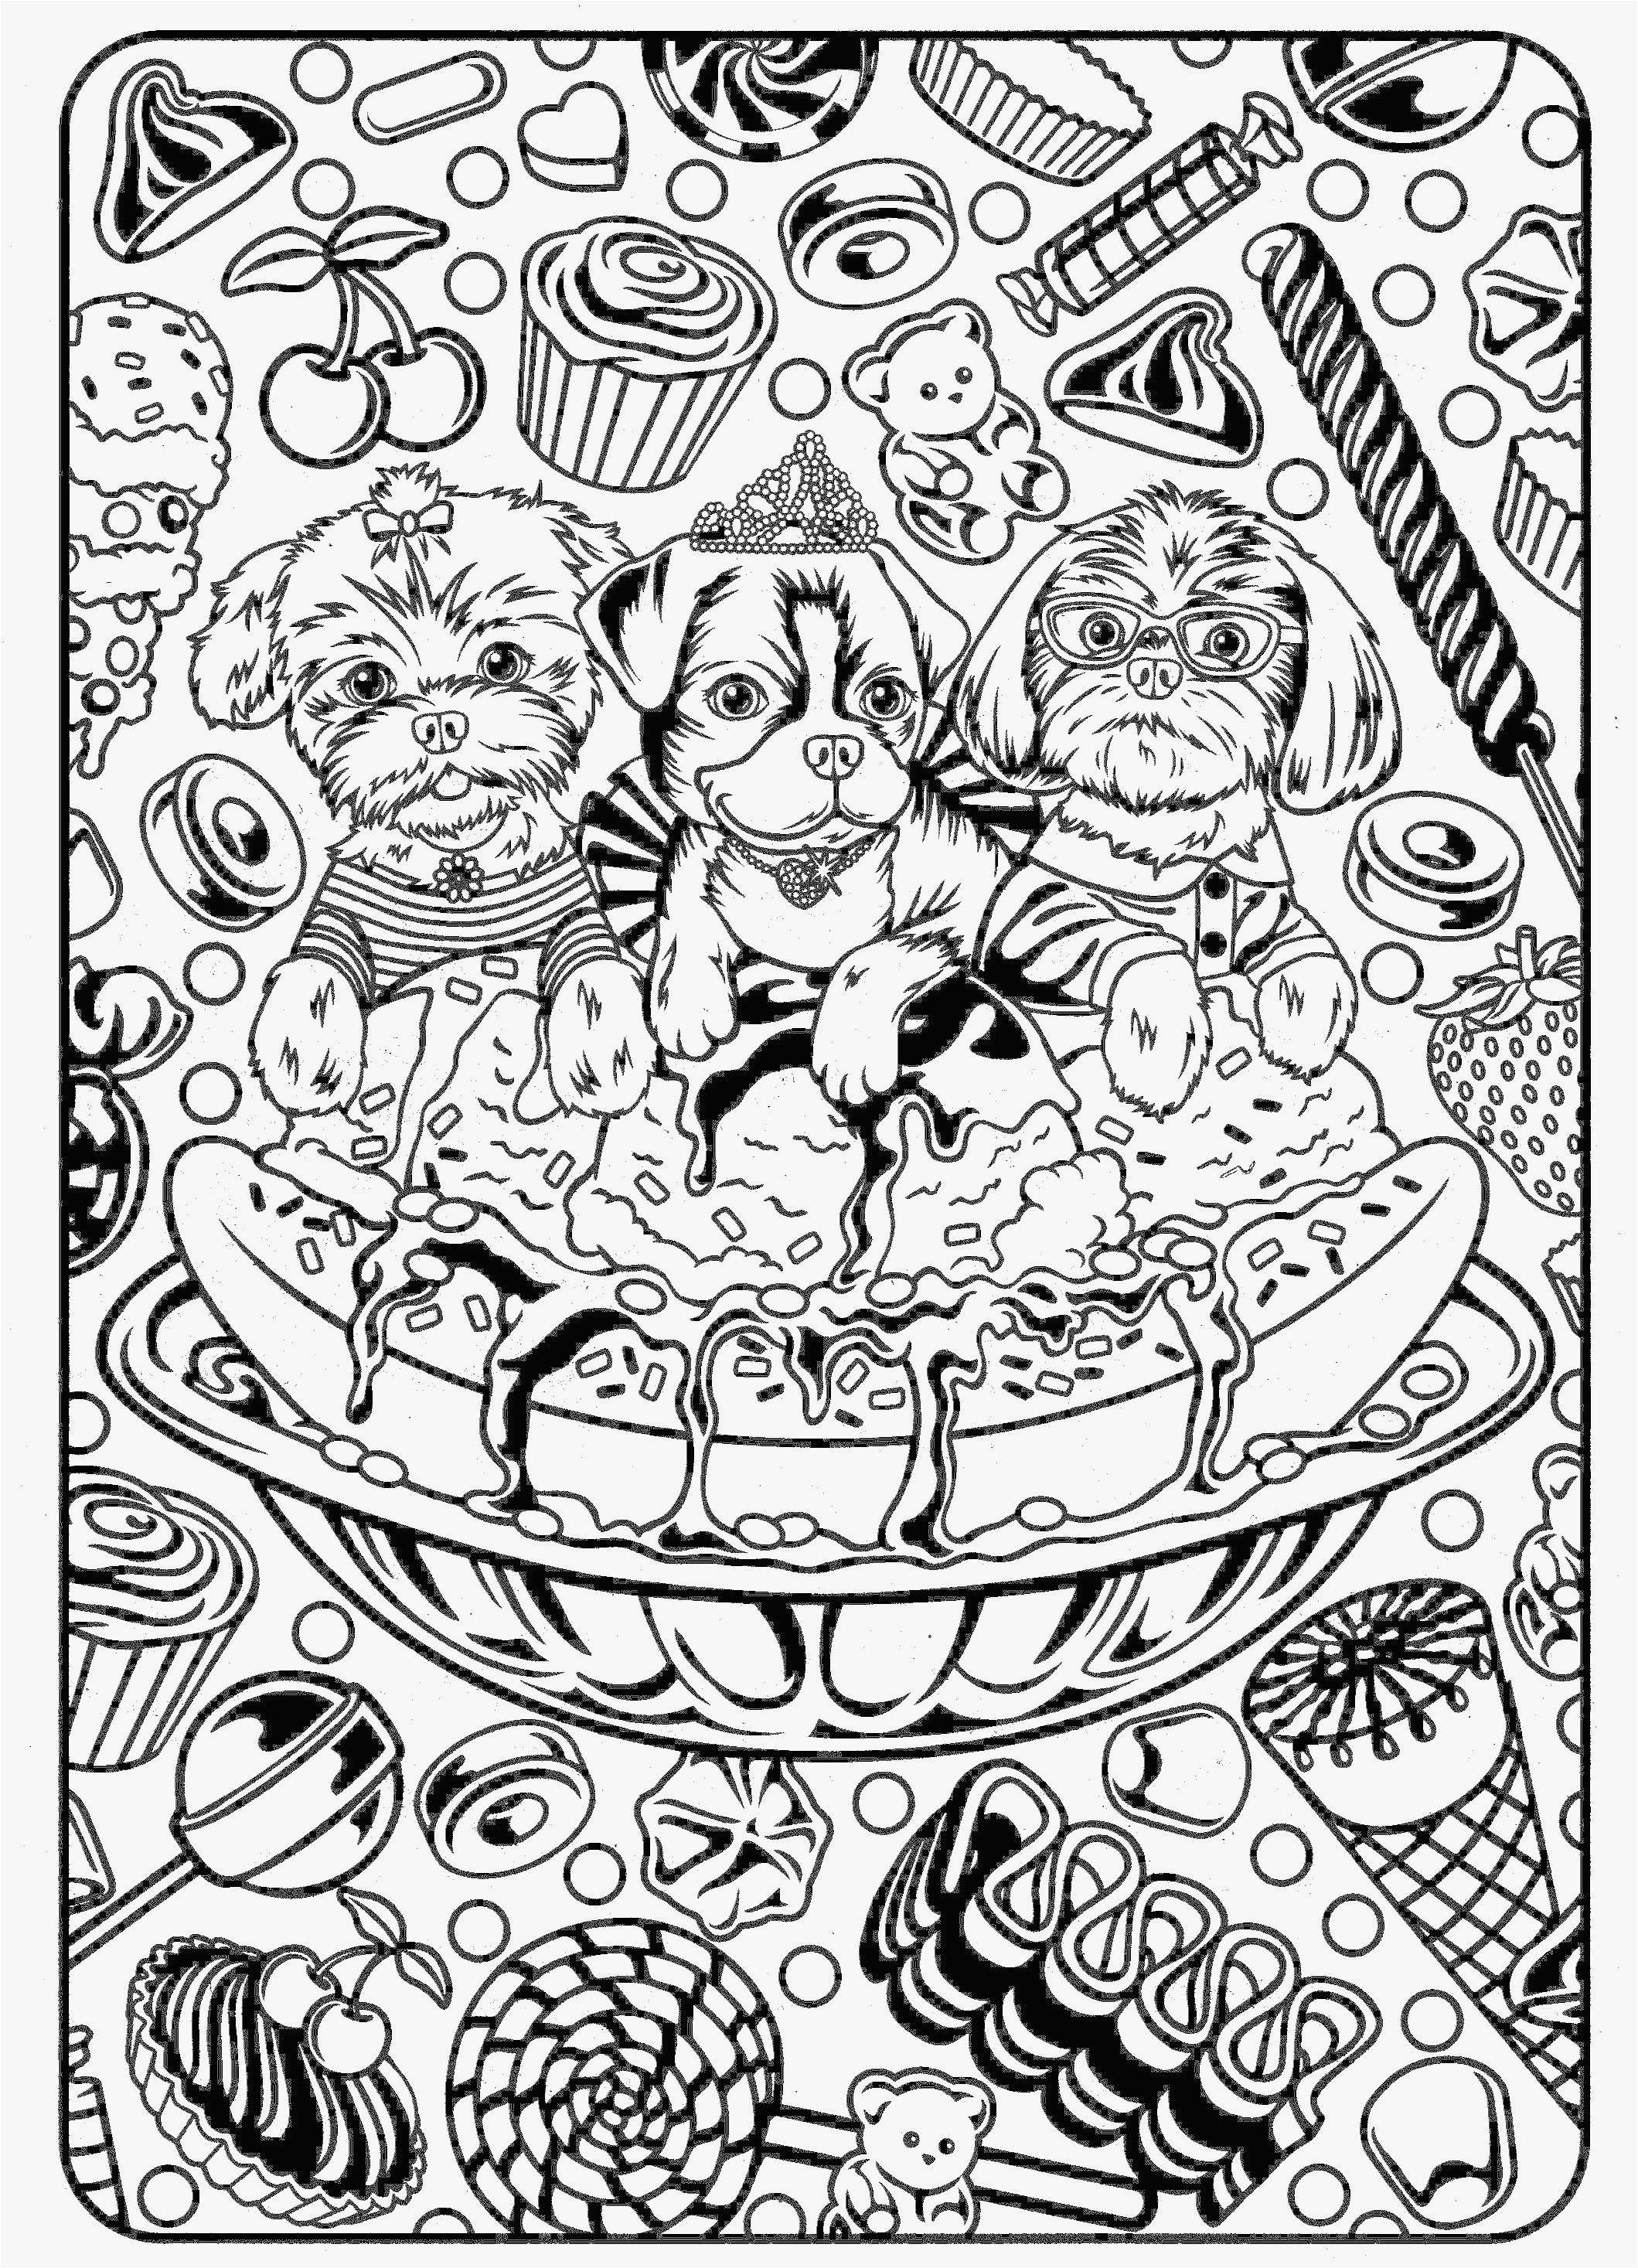 all about me coloring pages Download-Free Free Coloring Pages Elegant Crayola Pages 0d Archives Se Telefonyfo 2018 11-h